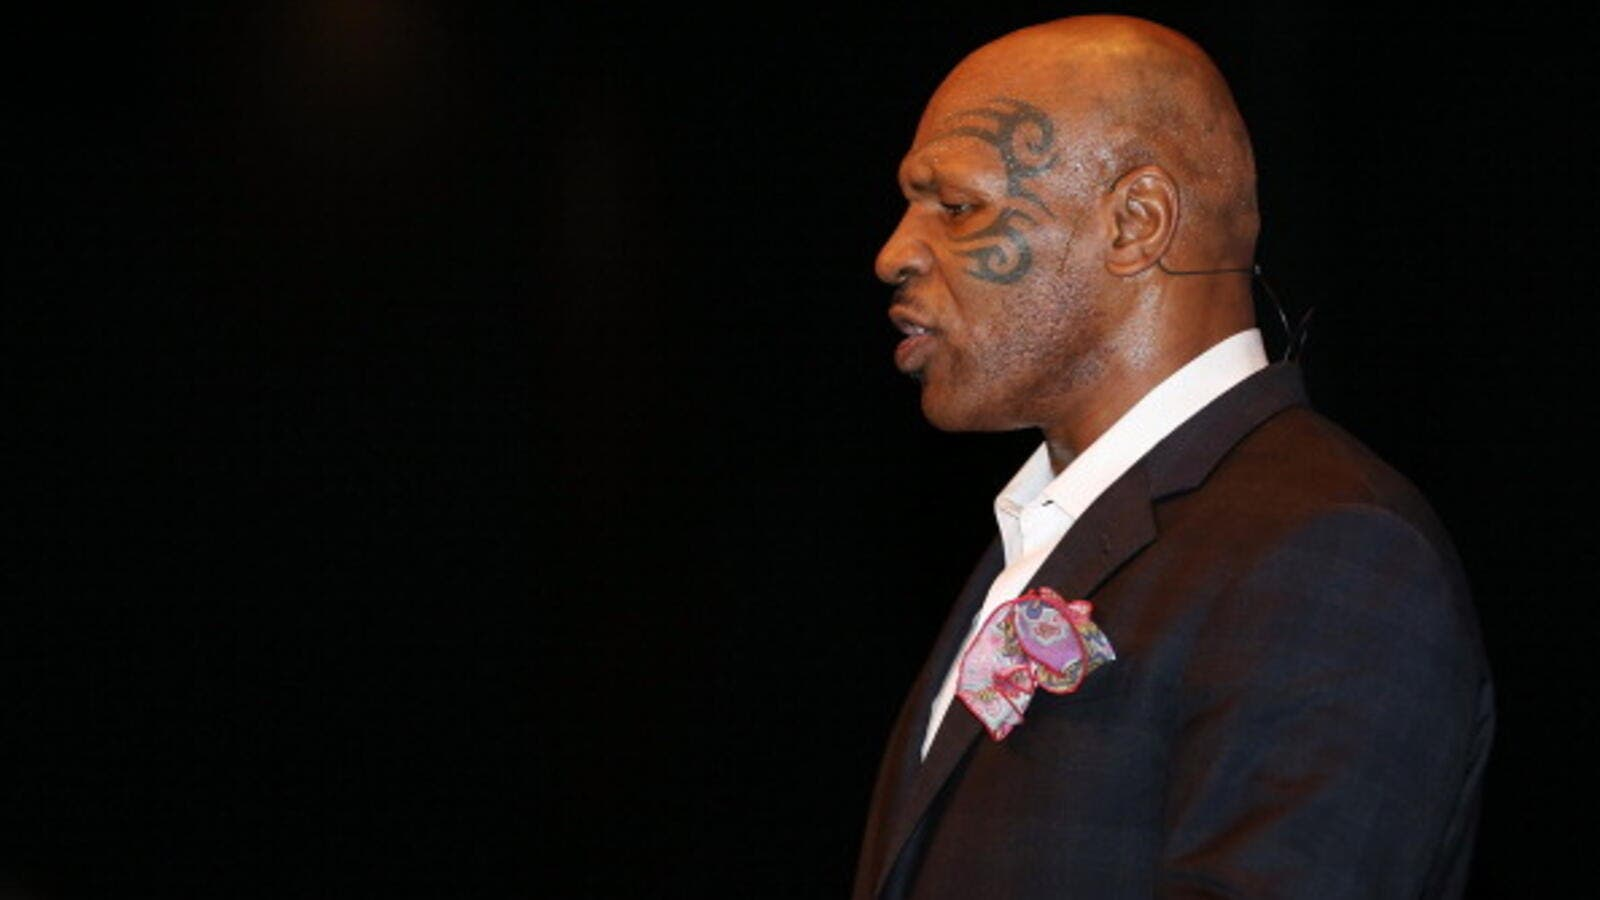 Tyson fools fans by tweeting about face tattoo removal | Al Bawaba